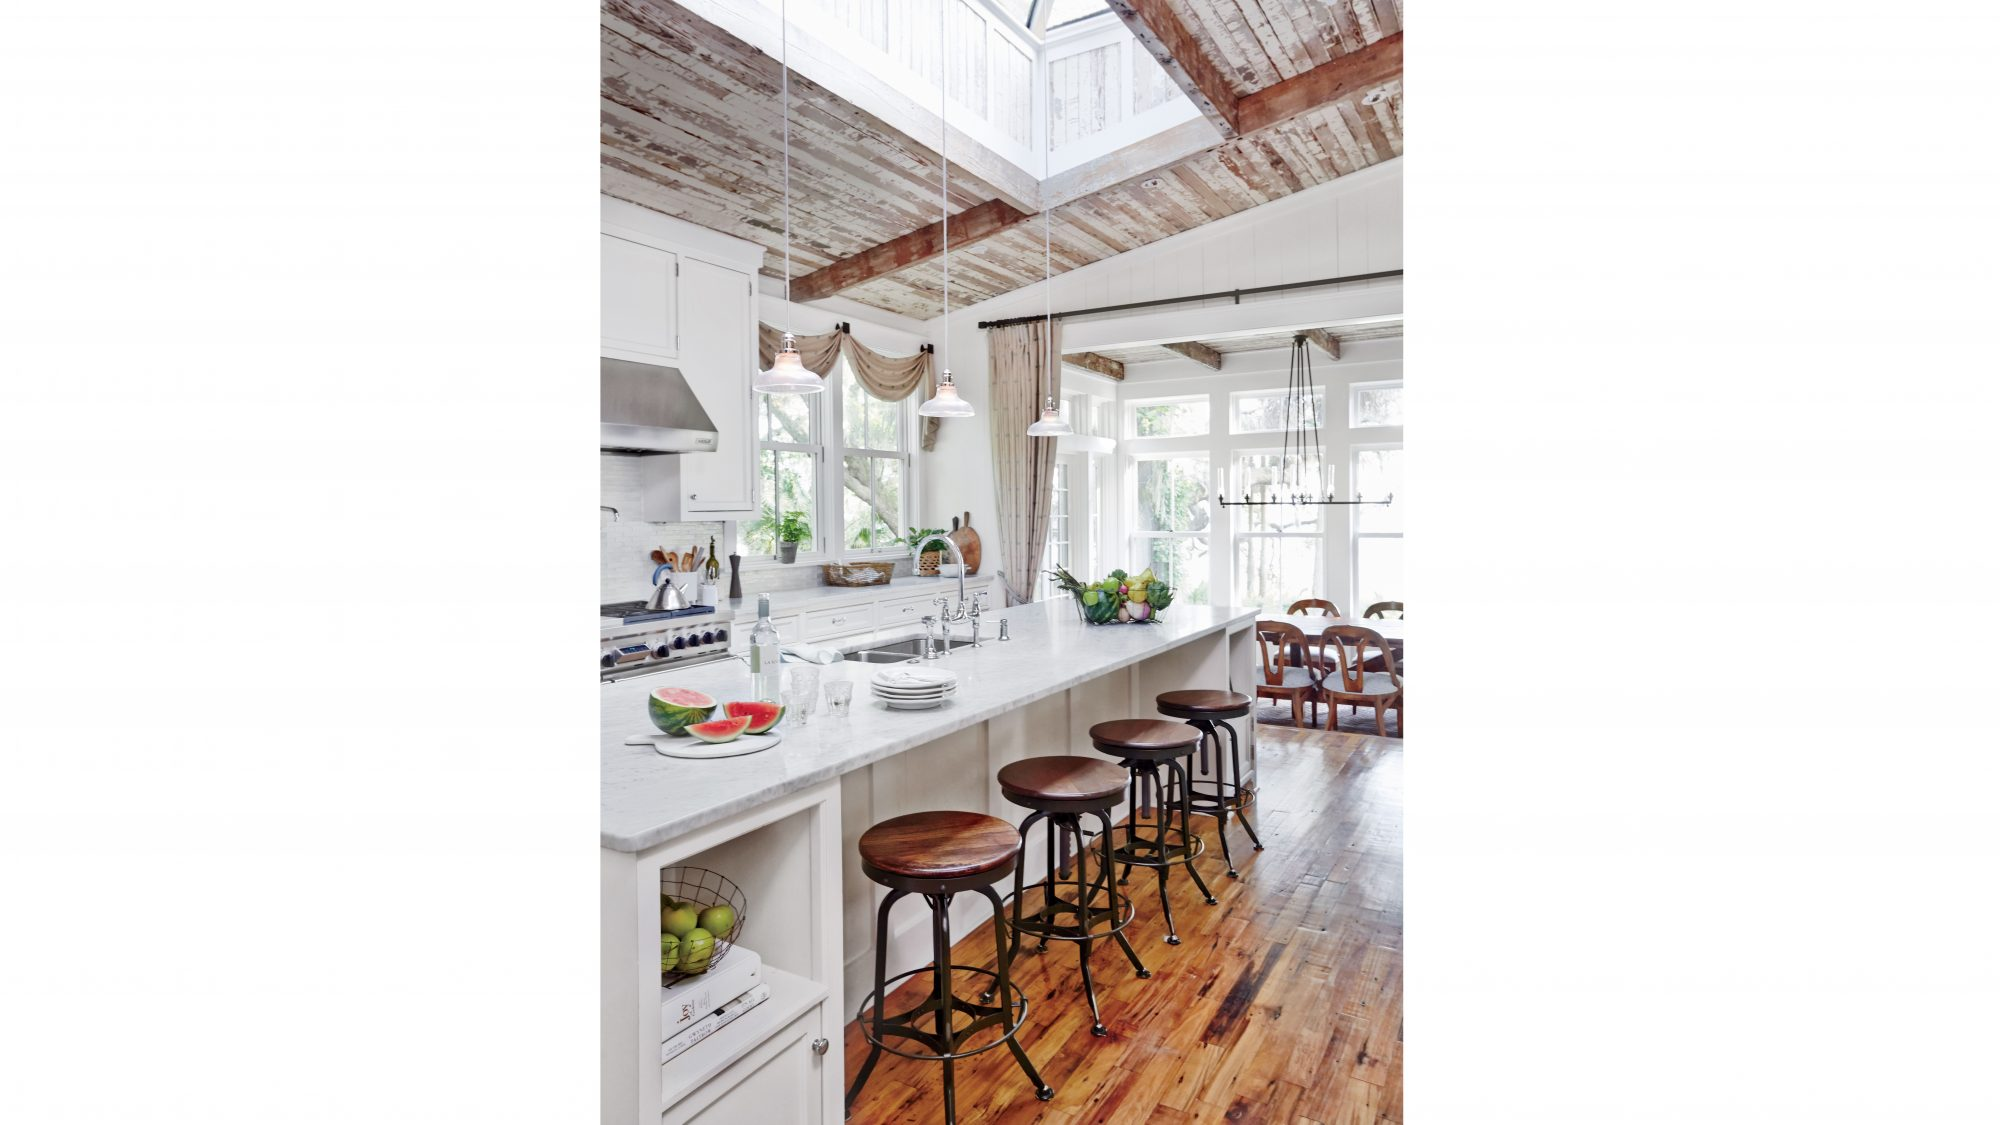 Lowcountry rustic kitchen